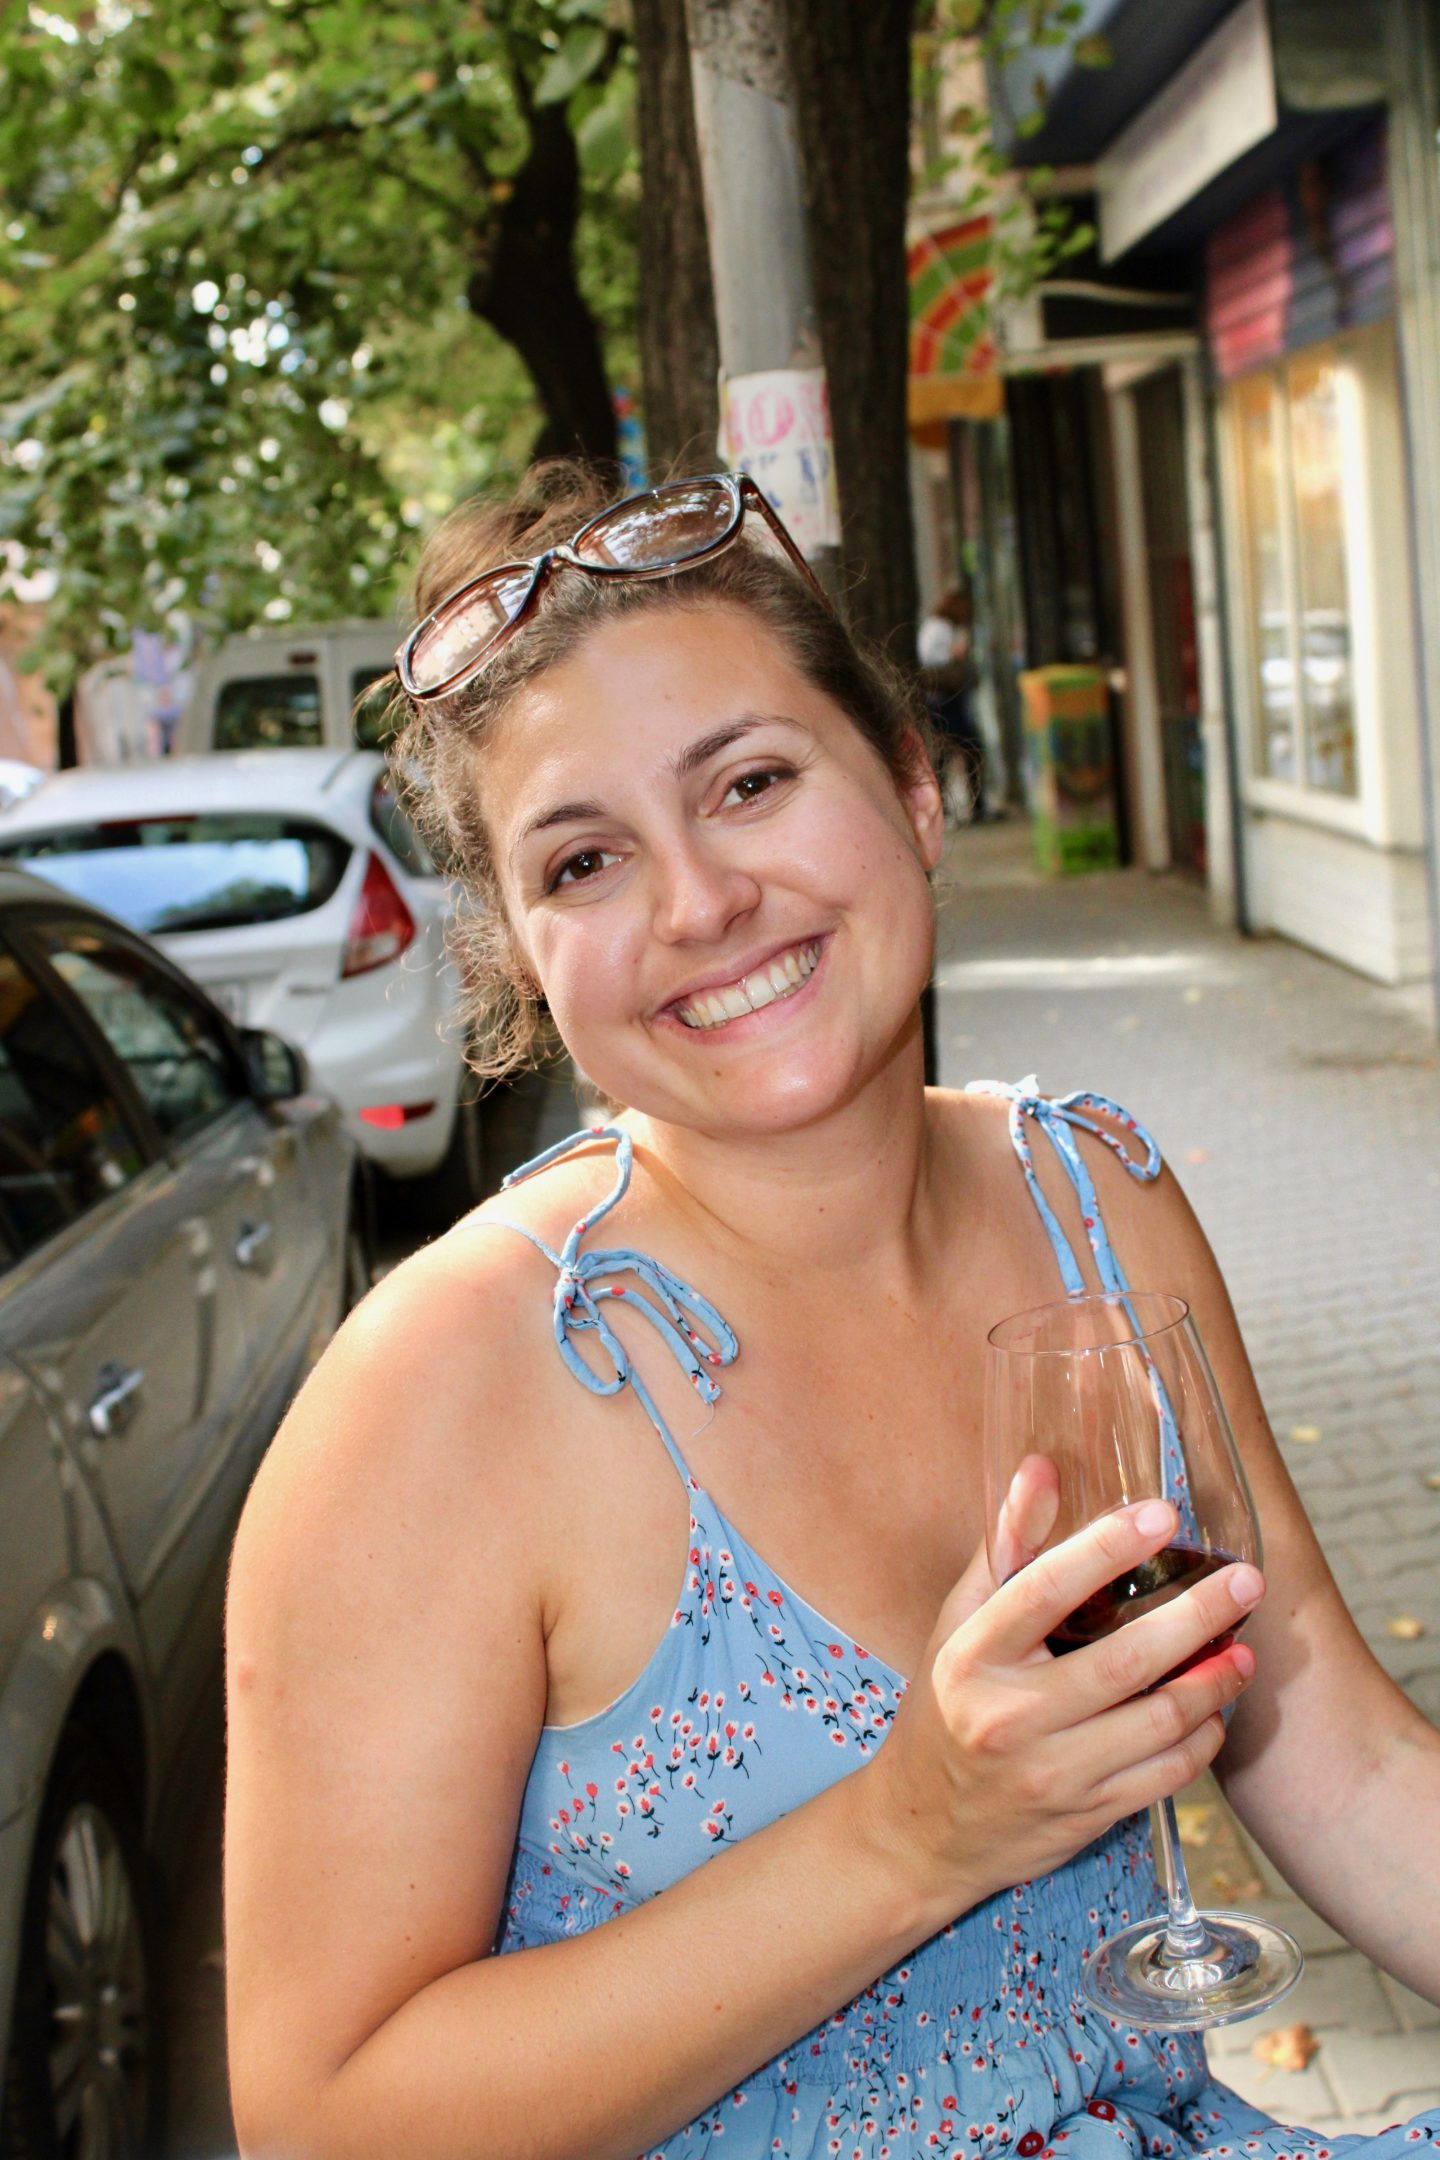 traditional bulgarian food in sofia: nell holding a glass of red wine and looking slightly tipsy